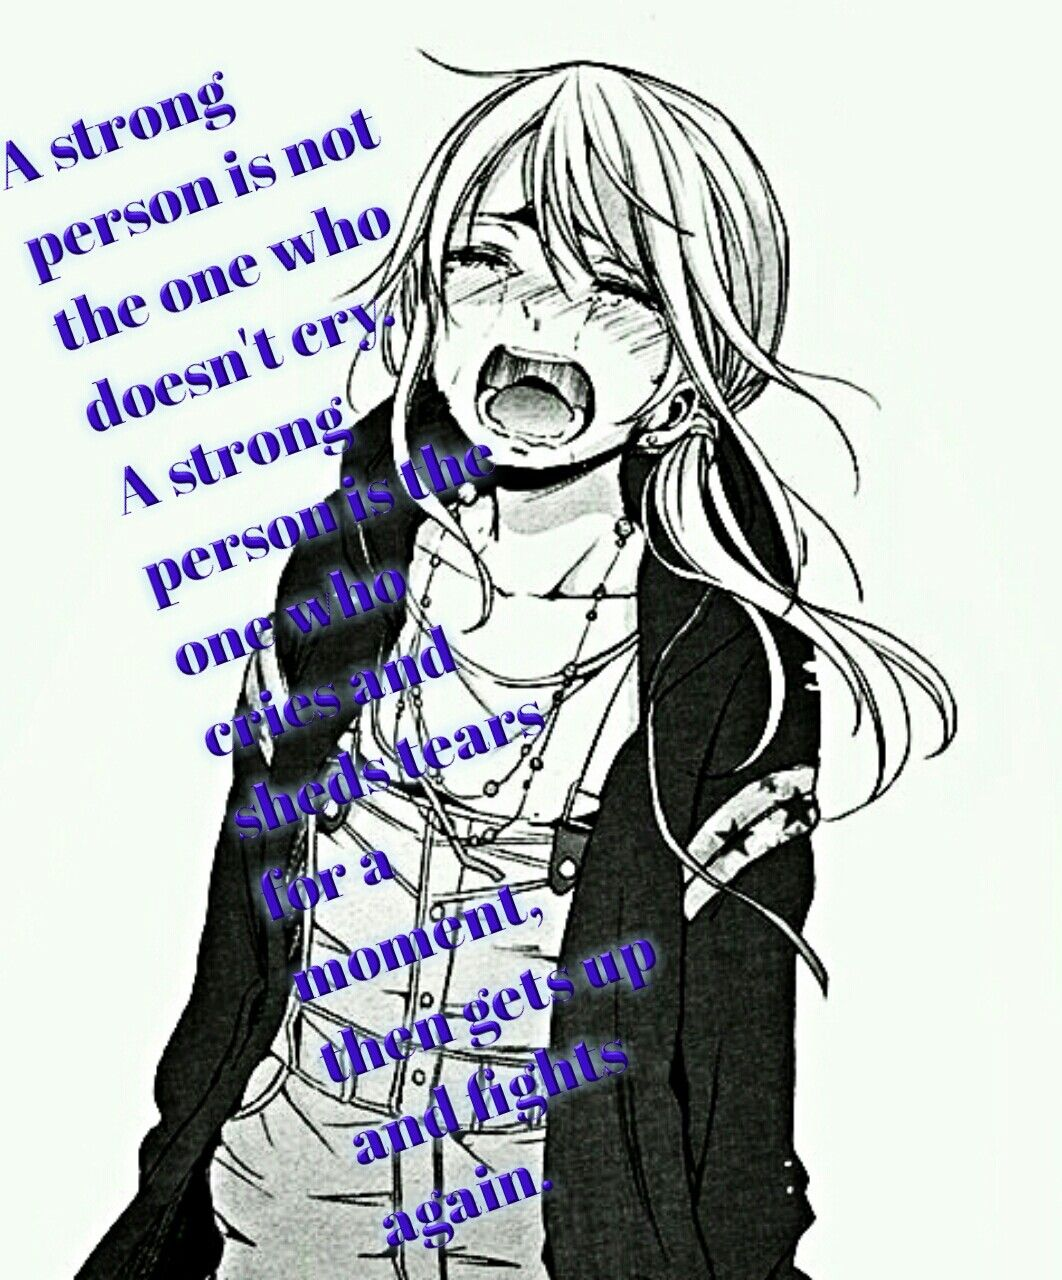 Long hair boy quotes a strong person   meine pins  pinterest  anime truths and